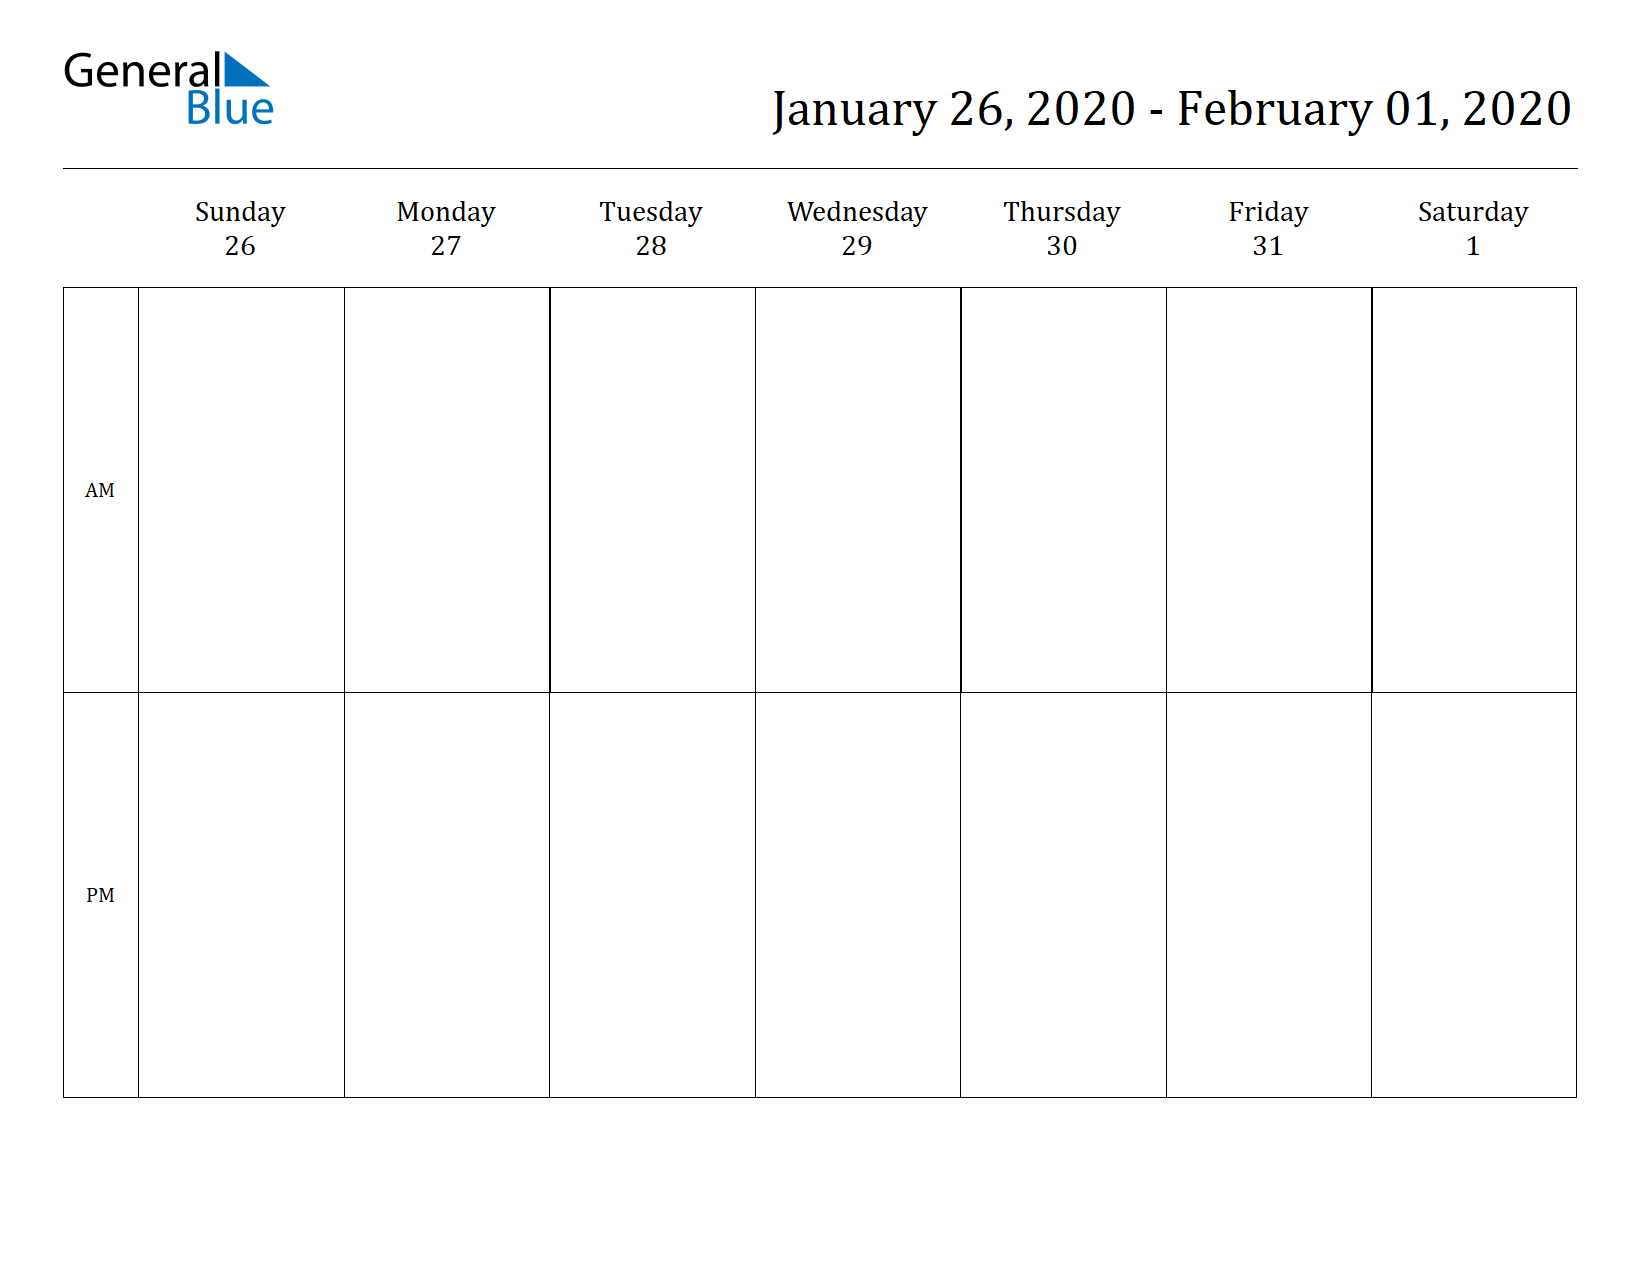 Weekly Calendar for Jan 26, 2020 to Feb 01, 2020